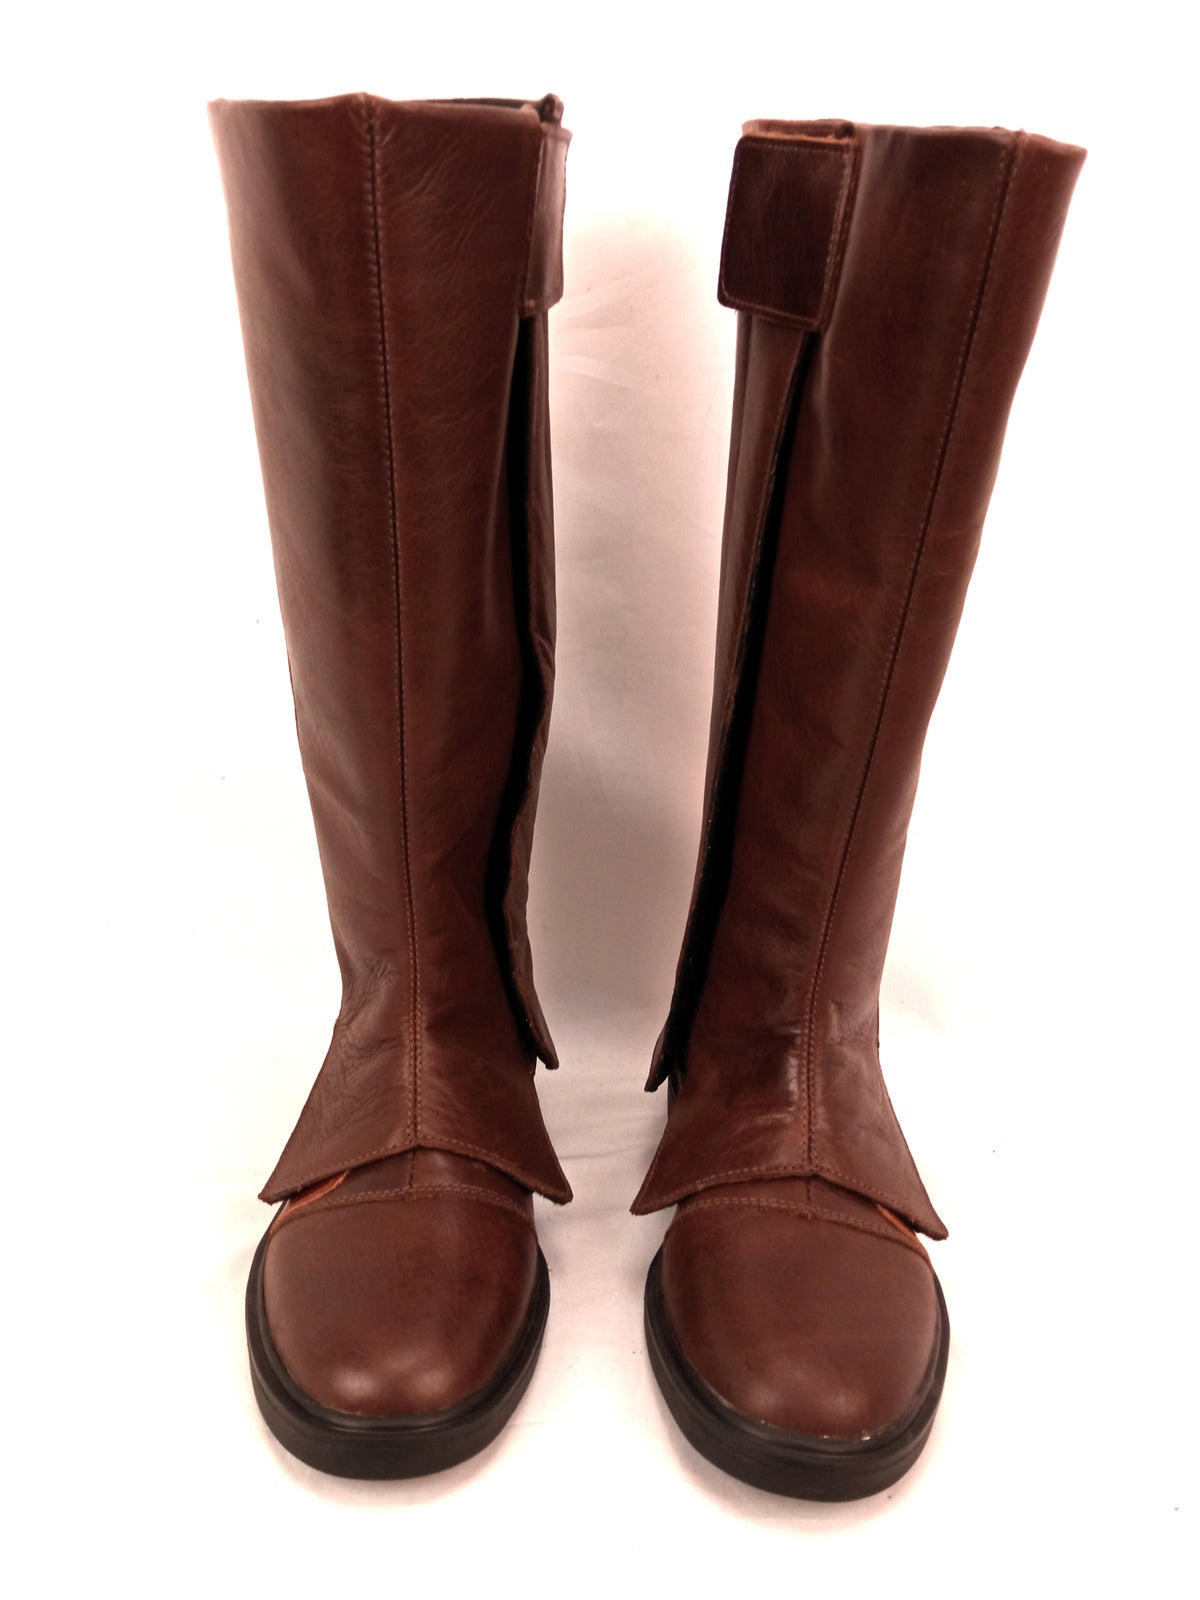 Image of BO KATAN BOOTS (booties and spats)